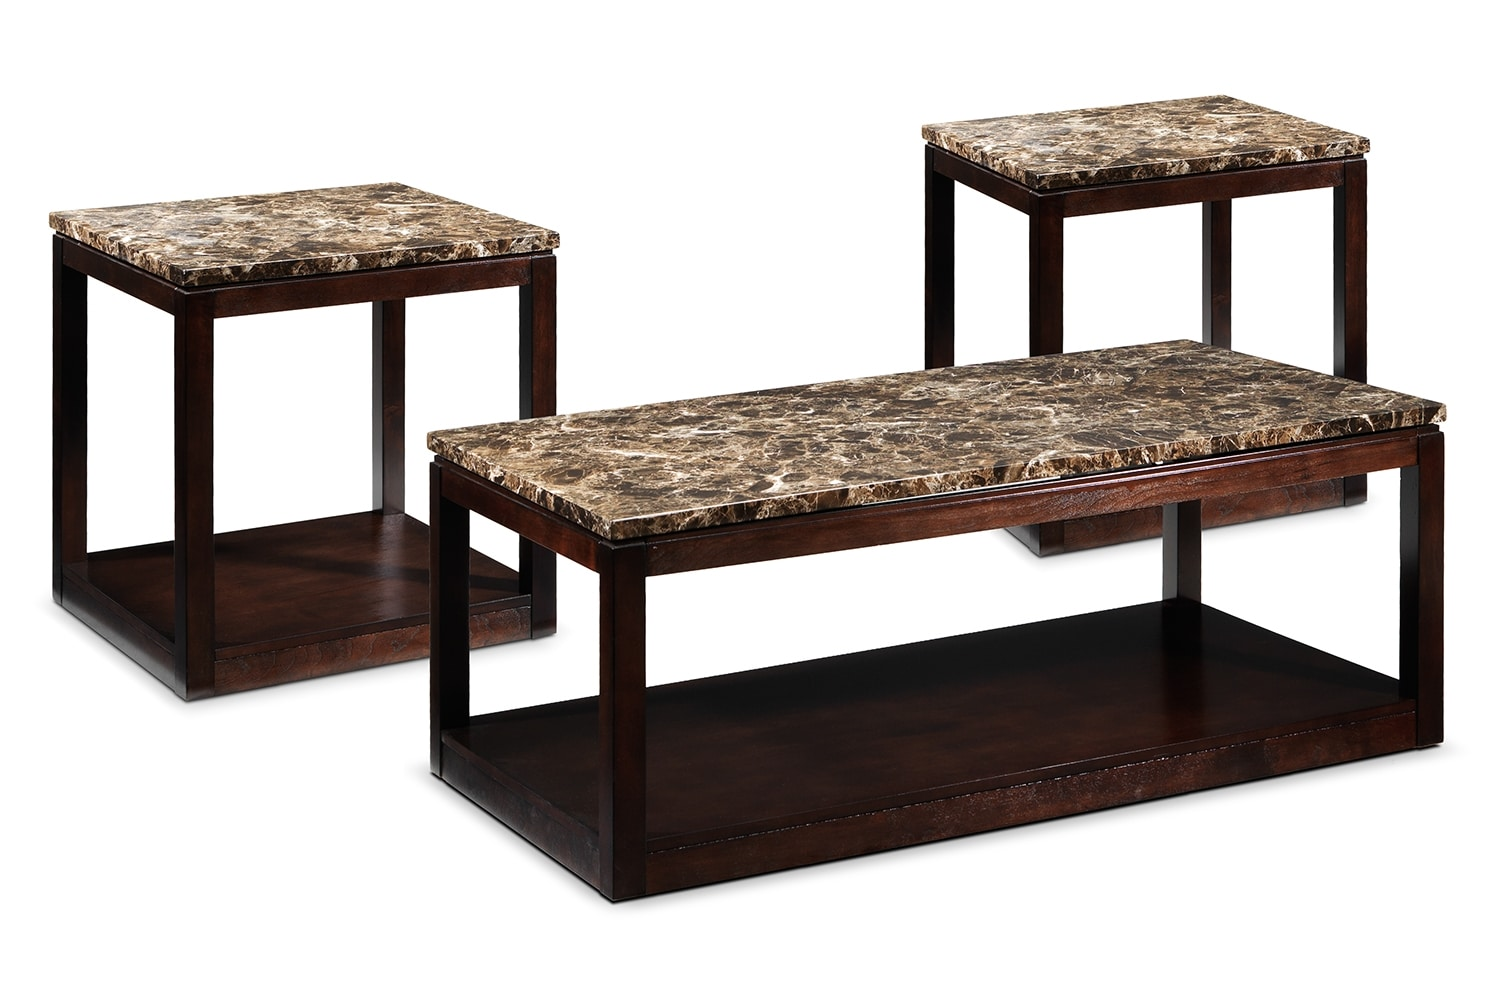 Spark Lift-Top Coffee Table & Two End Tables Set